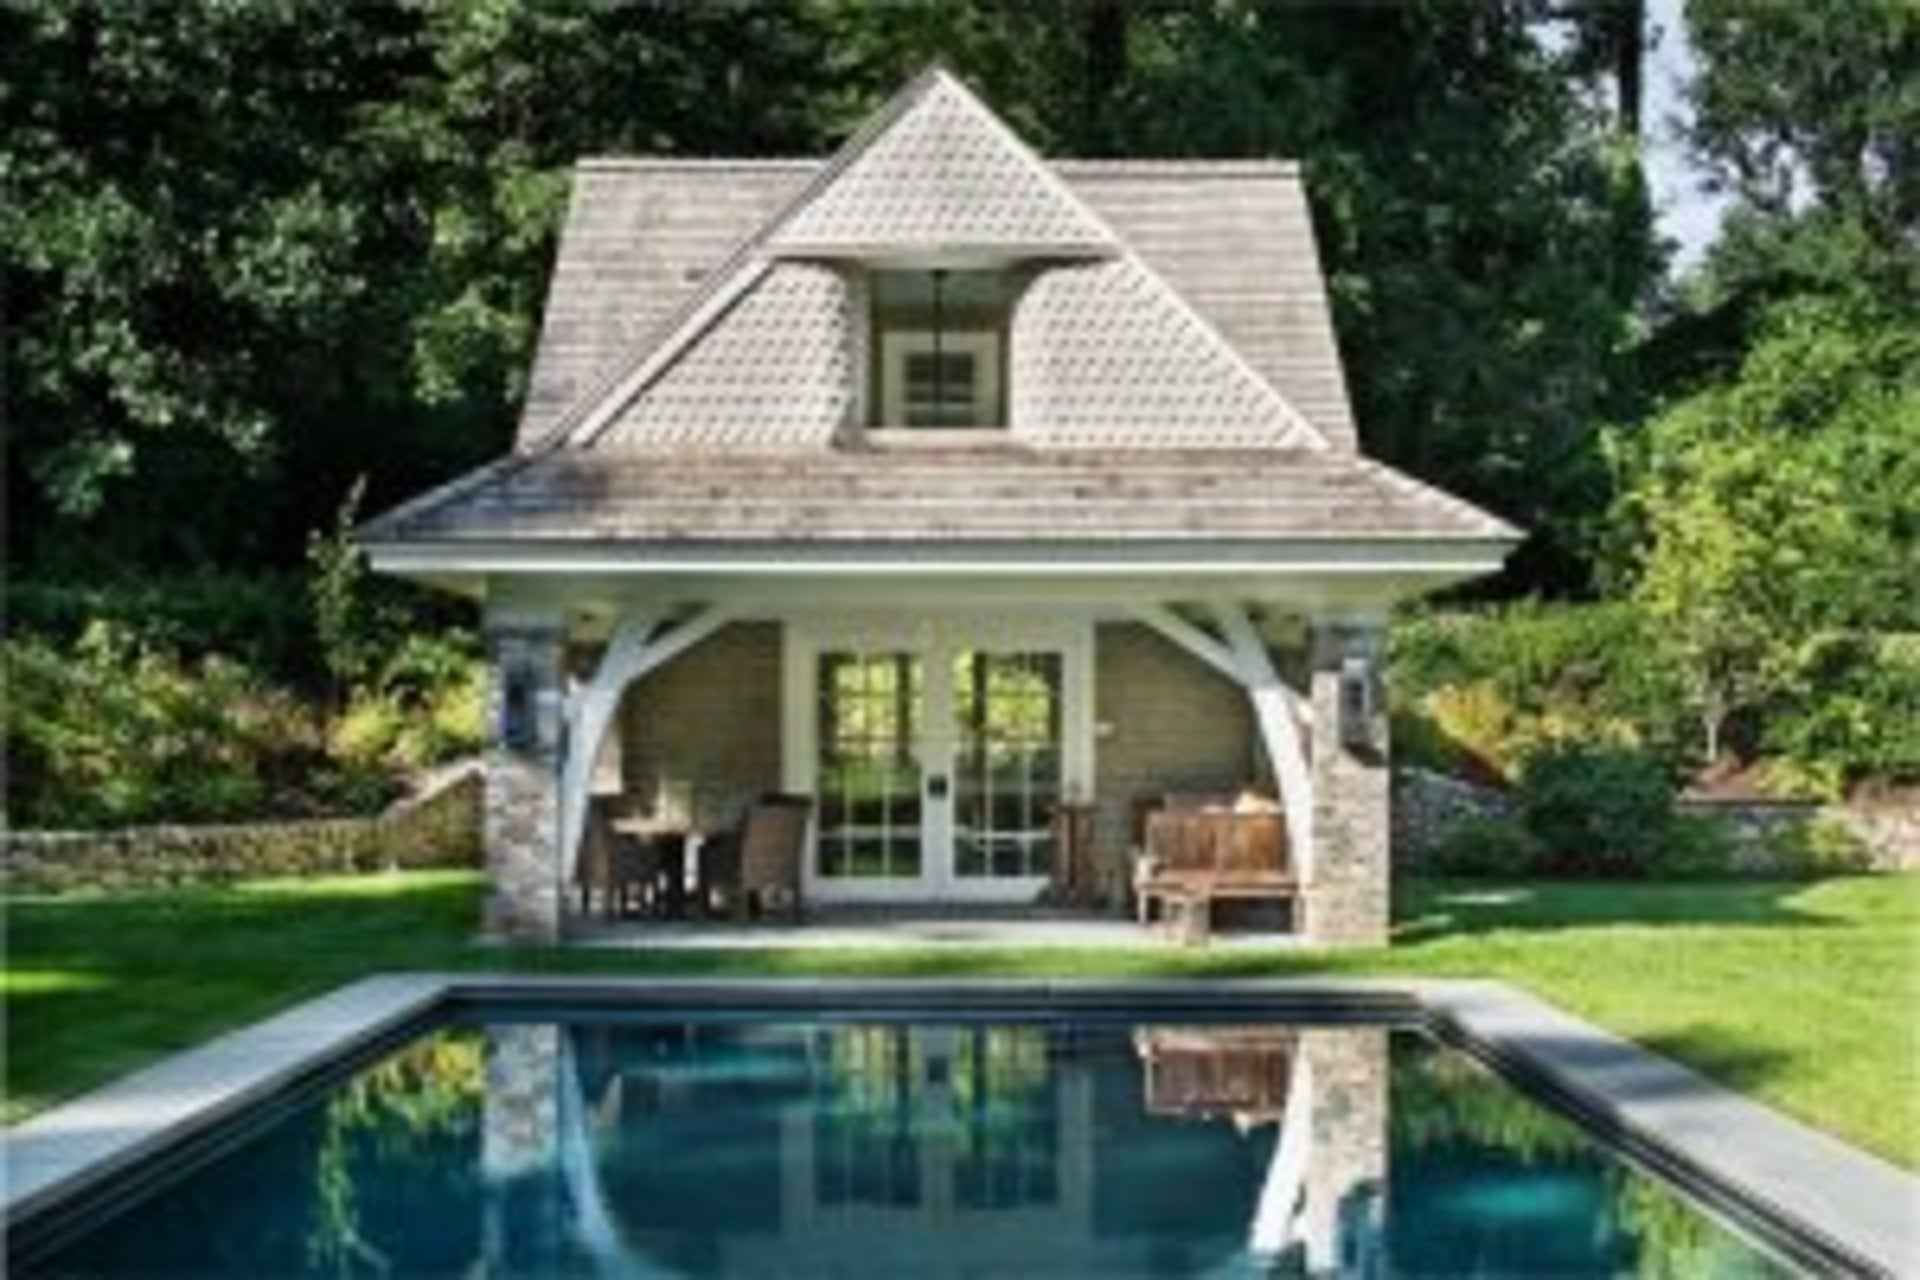 Pool Houses That Make a Splash - New Canaan, CT